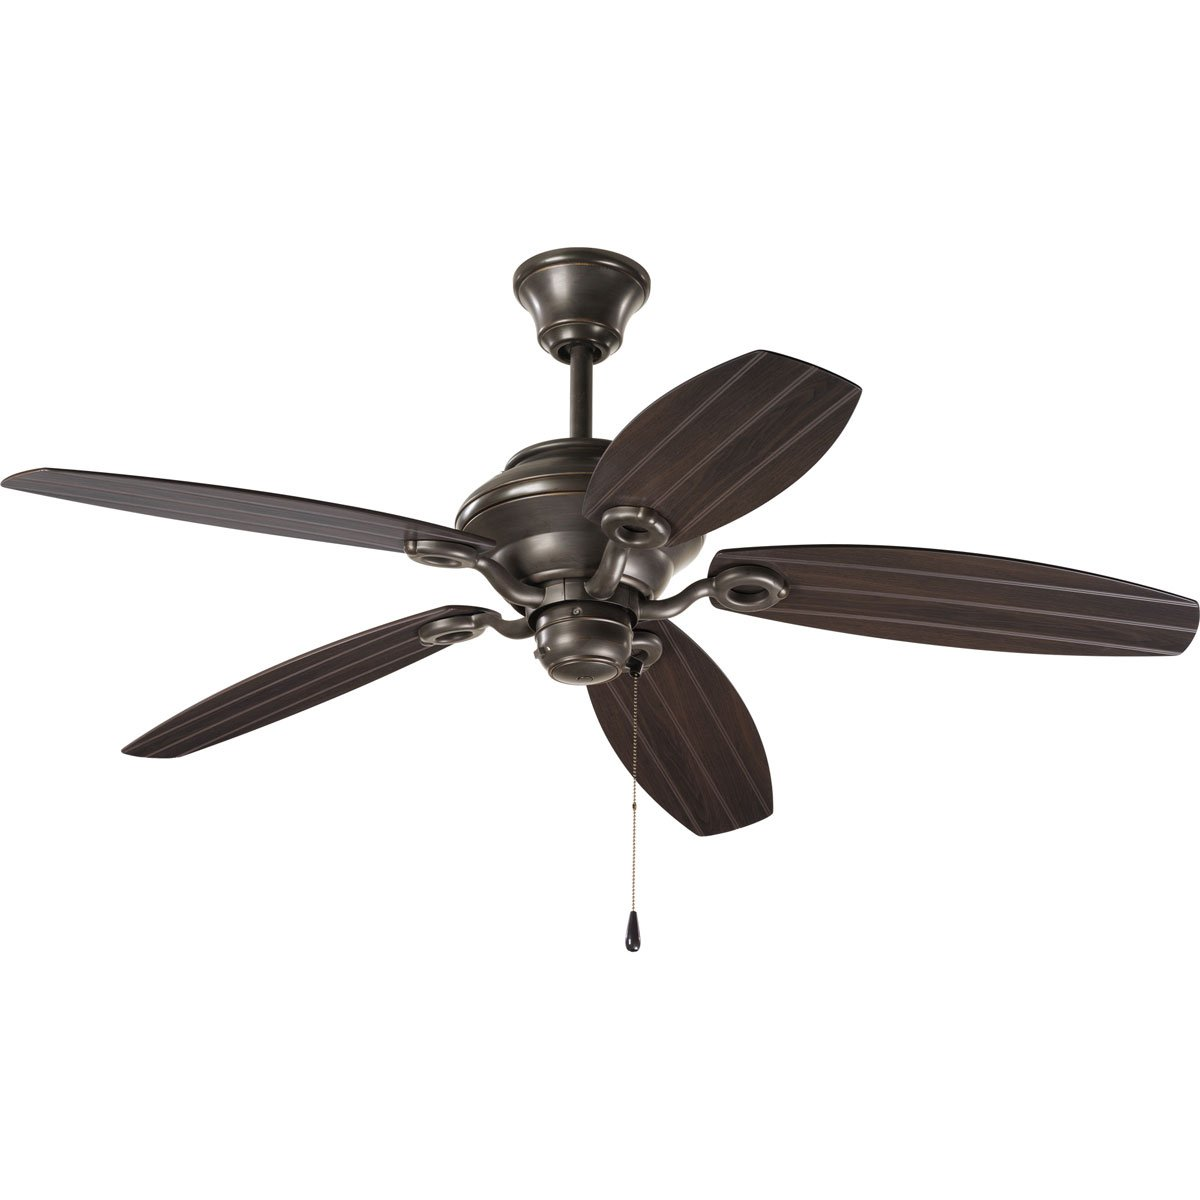 Progress Lighting P2533 20 52 Inch Air Pro Ceiling Fan, Antique Bronze    Outdoor Ceiling Fan   Amazon.com